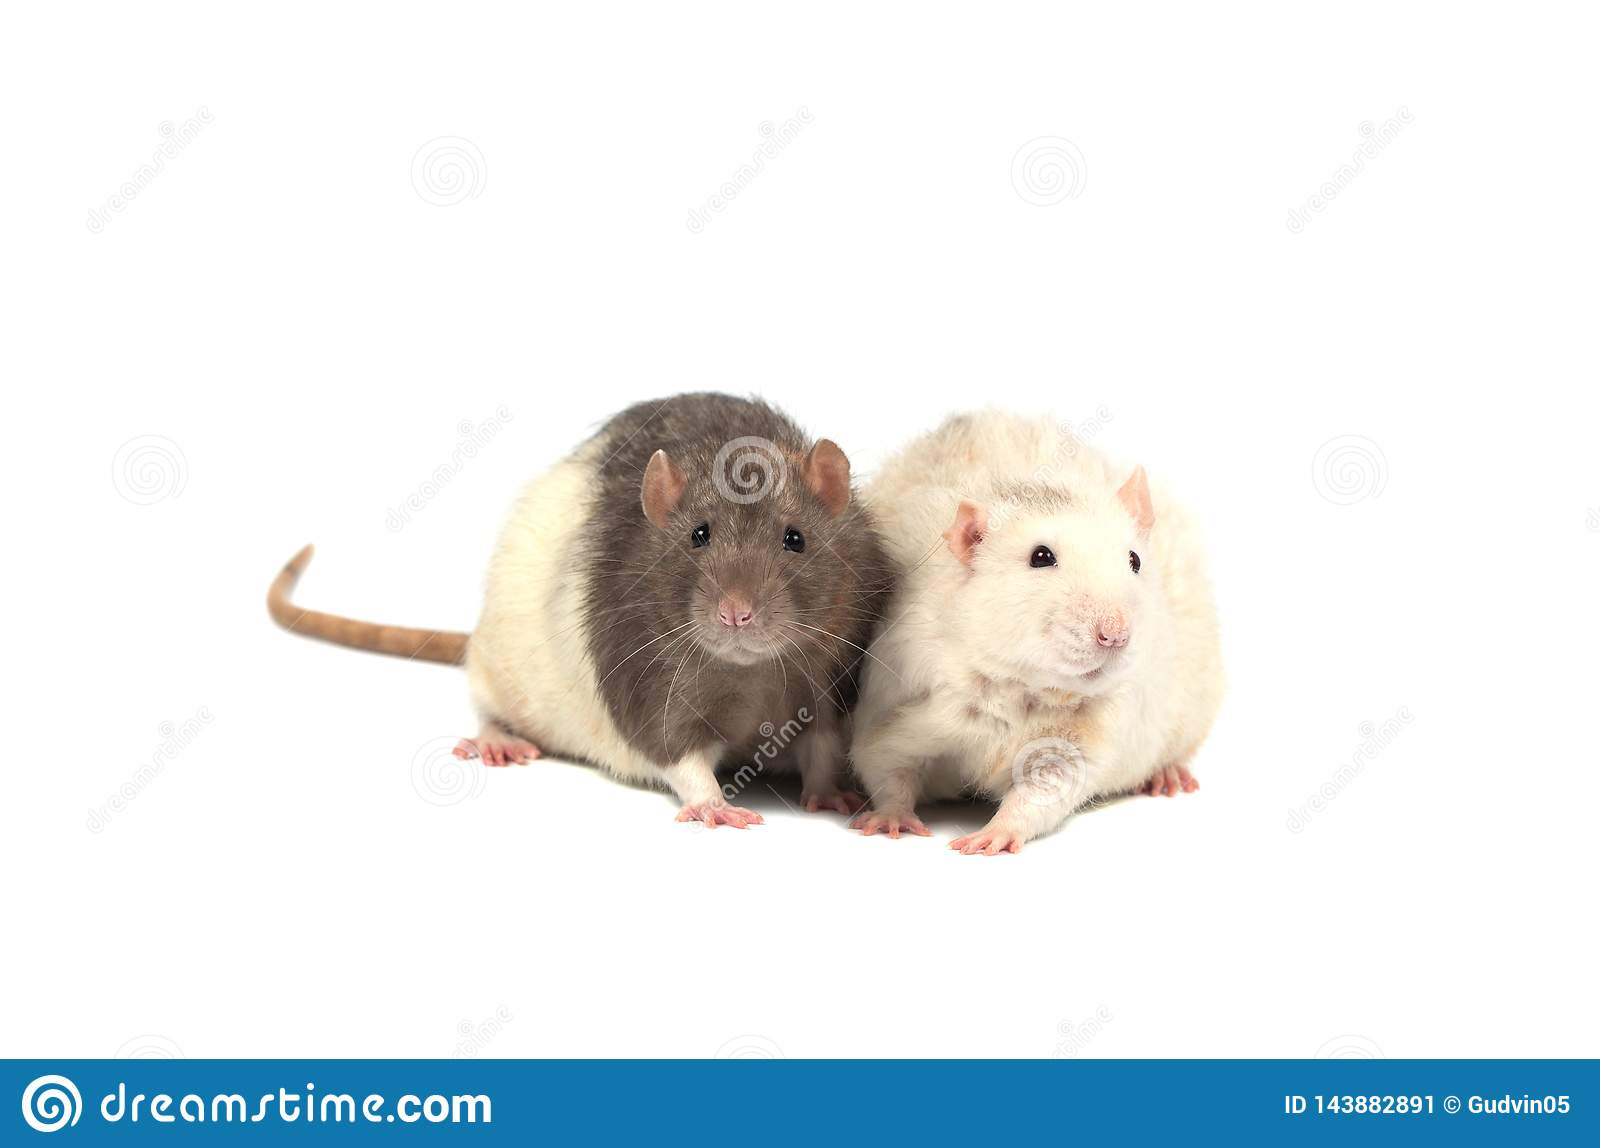 Rats isolated on white background. Two rats.